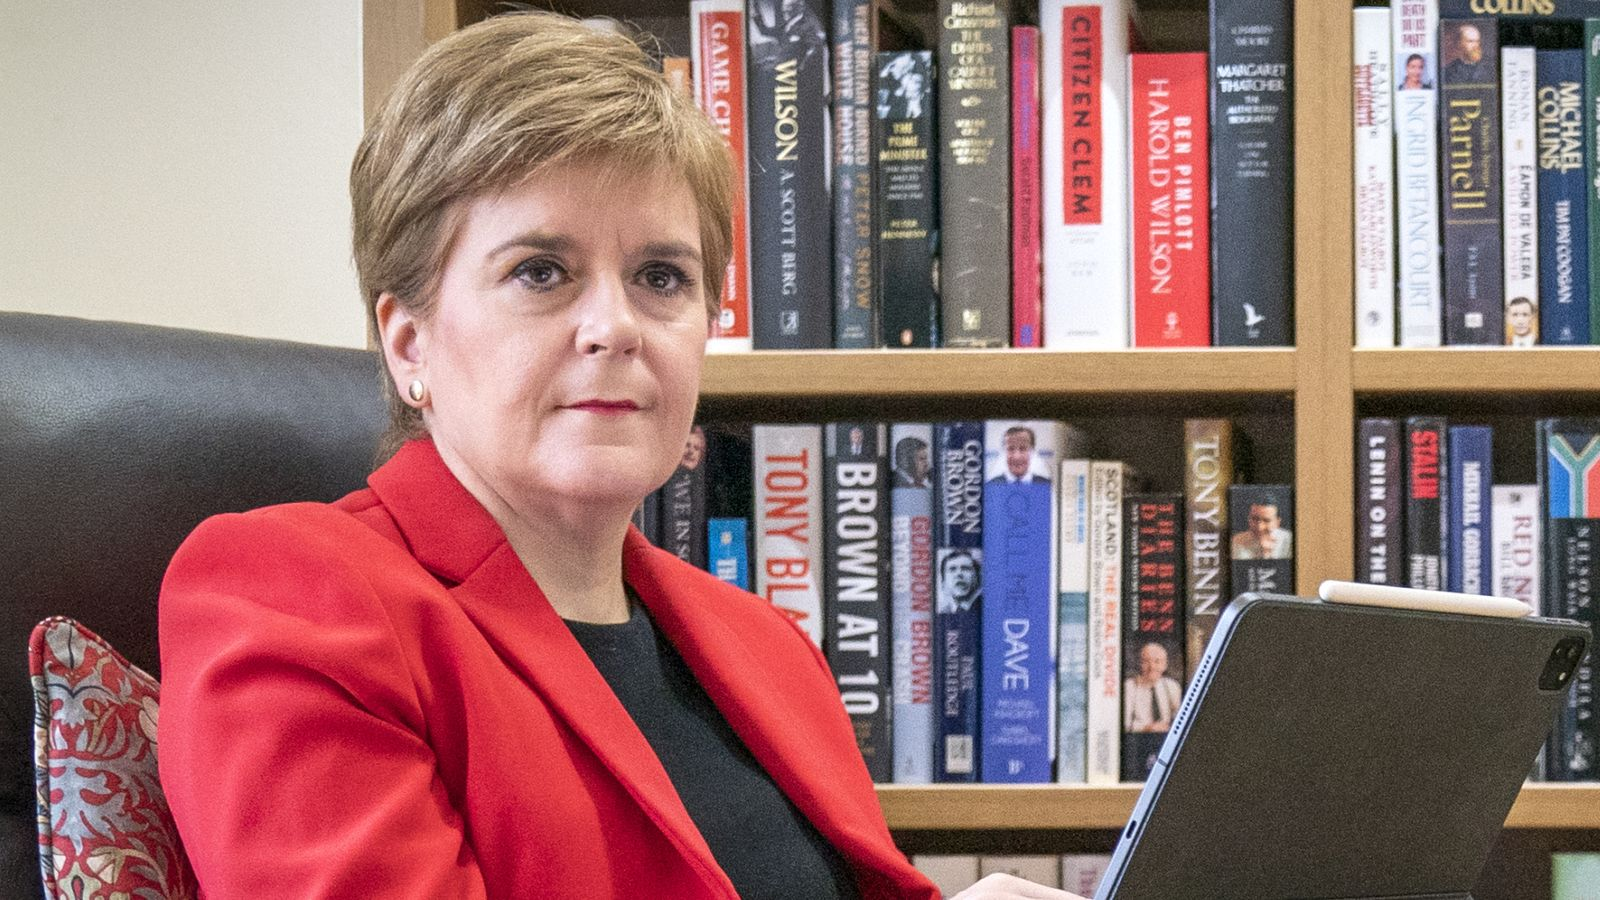 Nicola Sturgeon to ask UK government to agree to second Scottish independence referendum